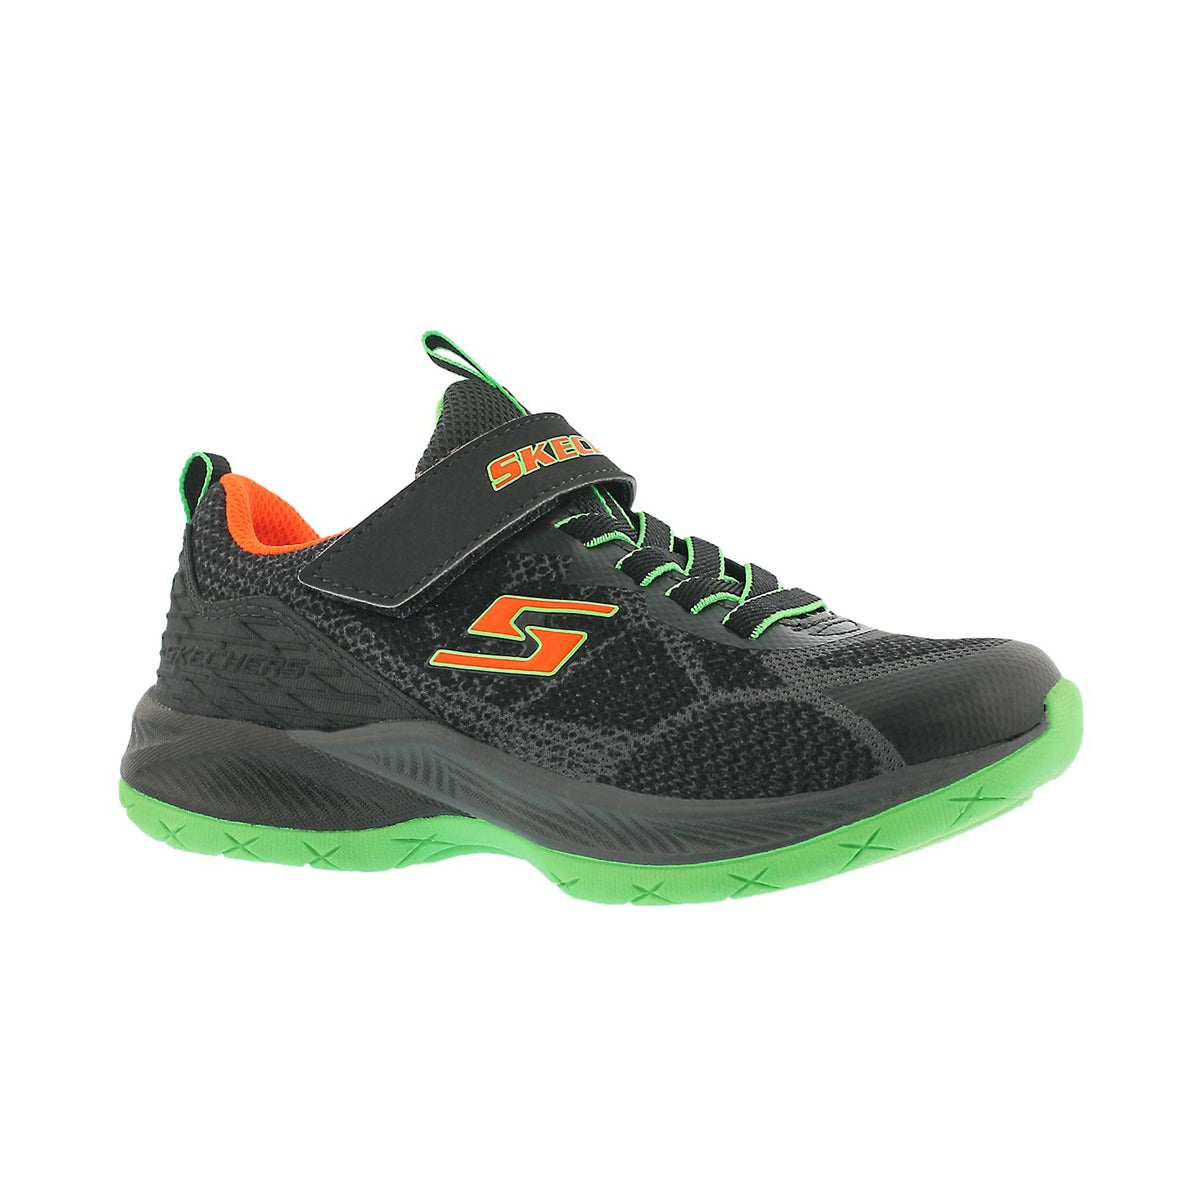 Boys' LUNAR SONIC charcoal/lime sneakers